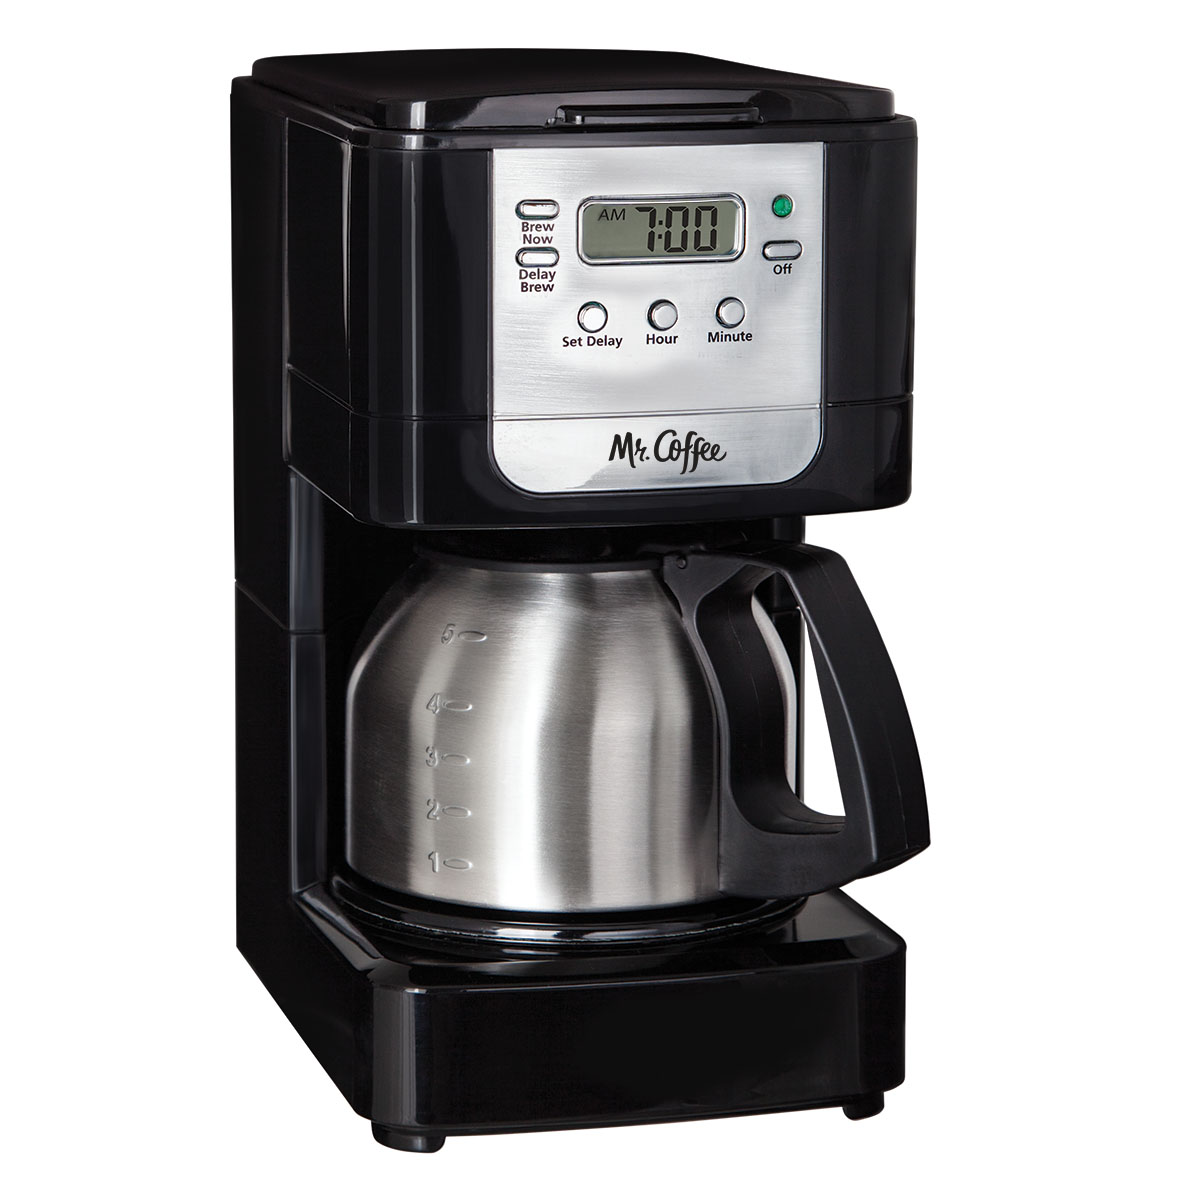 Coffee Maker Stainless Steel Inside : Mr. Coffee Advanced Brew 5Cup Programmable Coffee Maker w-Stainless Steel Carafe Most ...